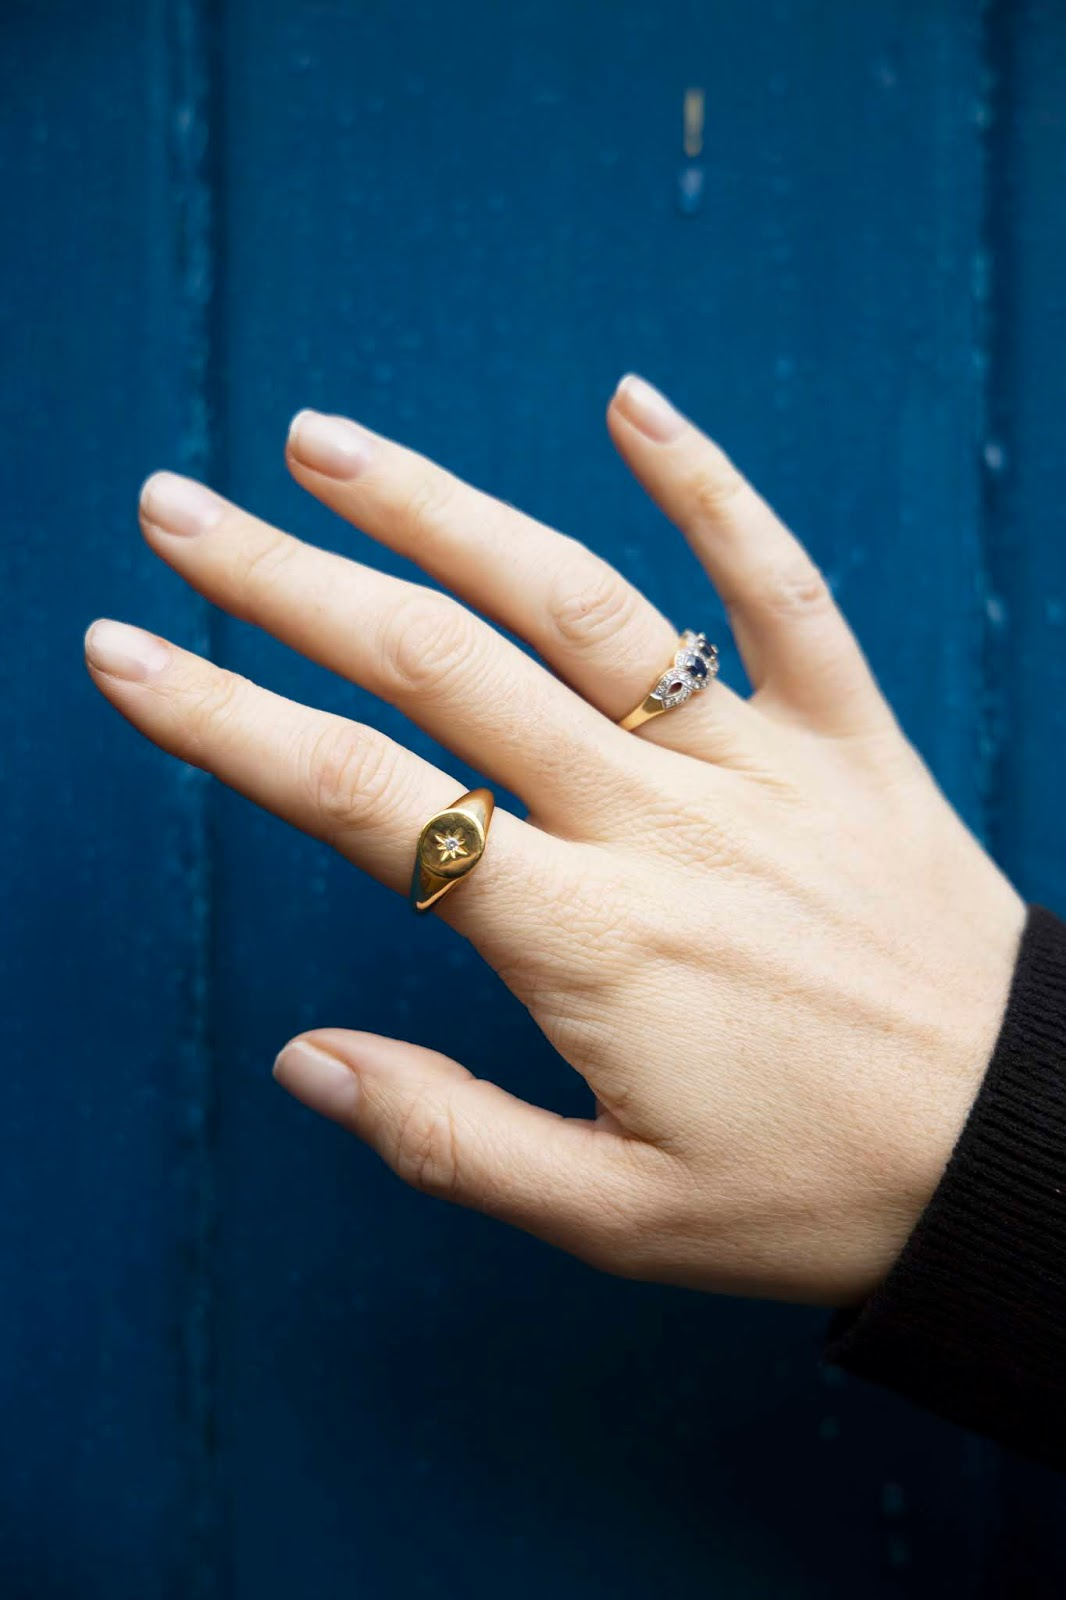 seol + gold signet ring jewellery